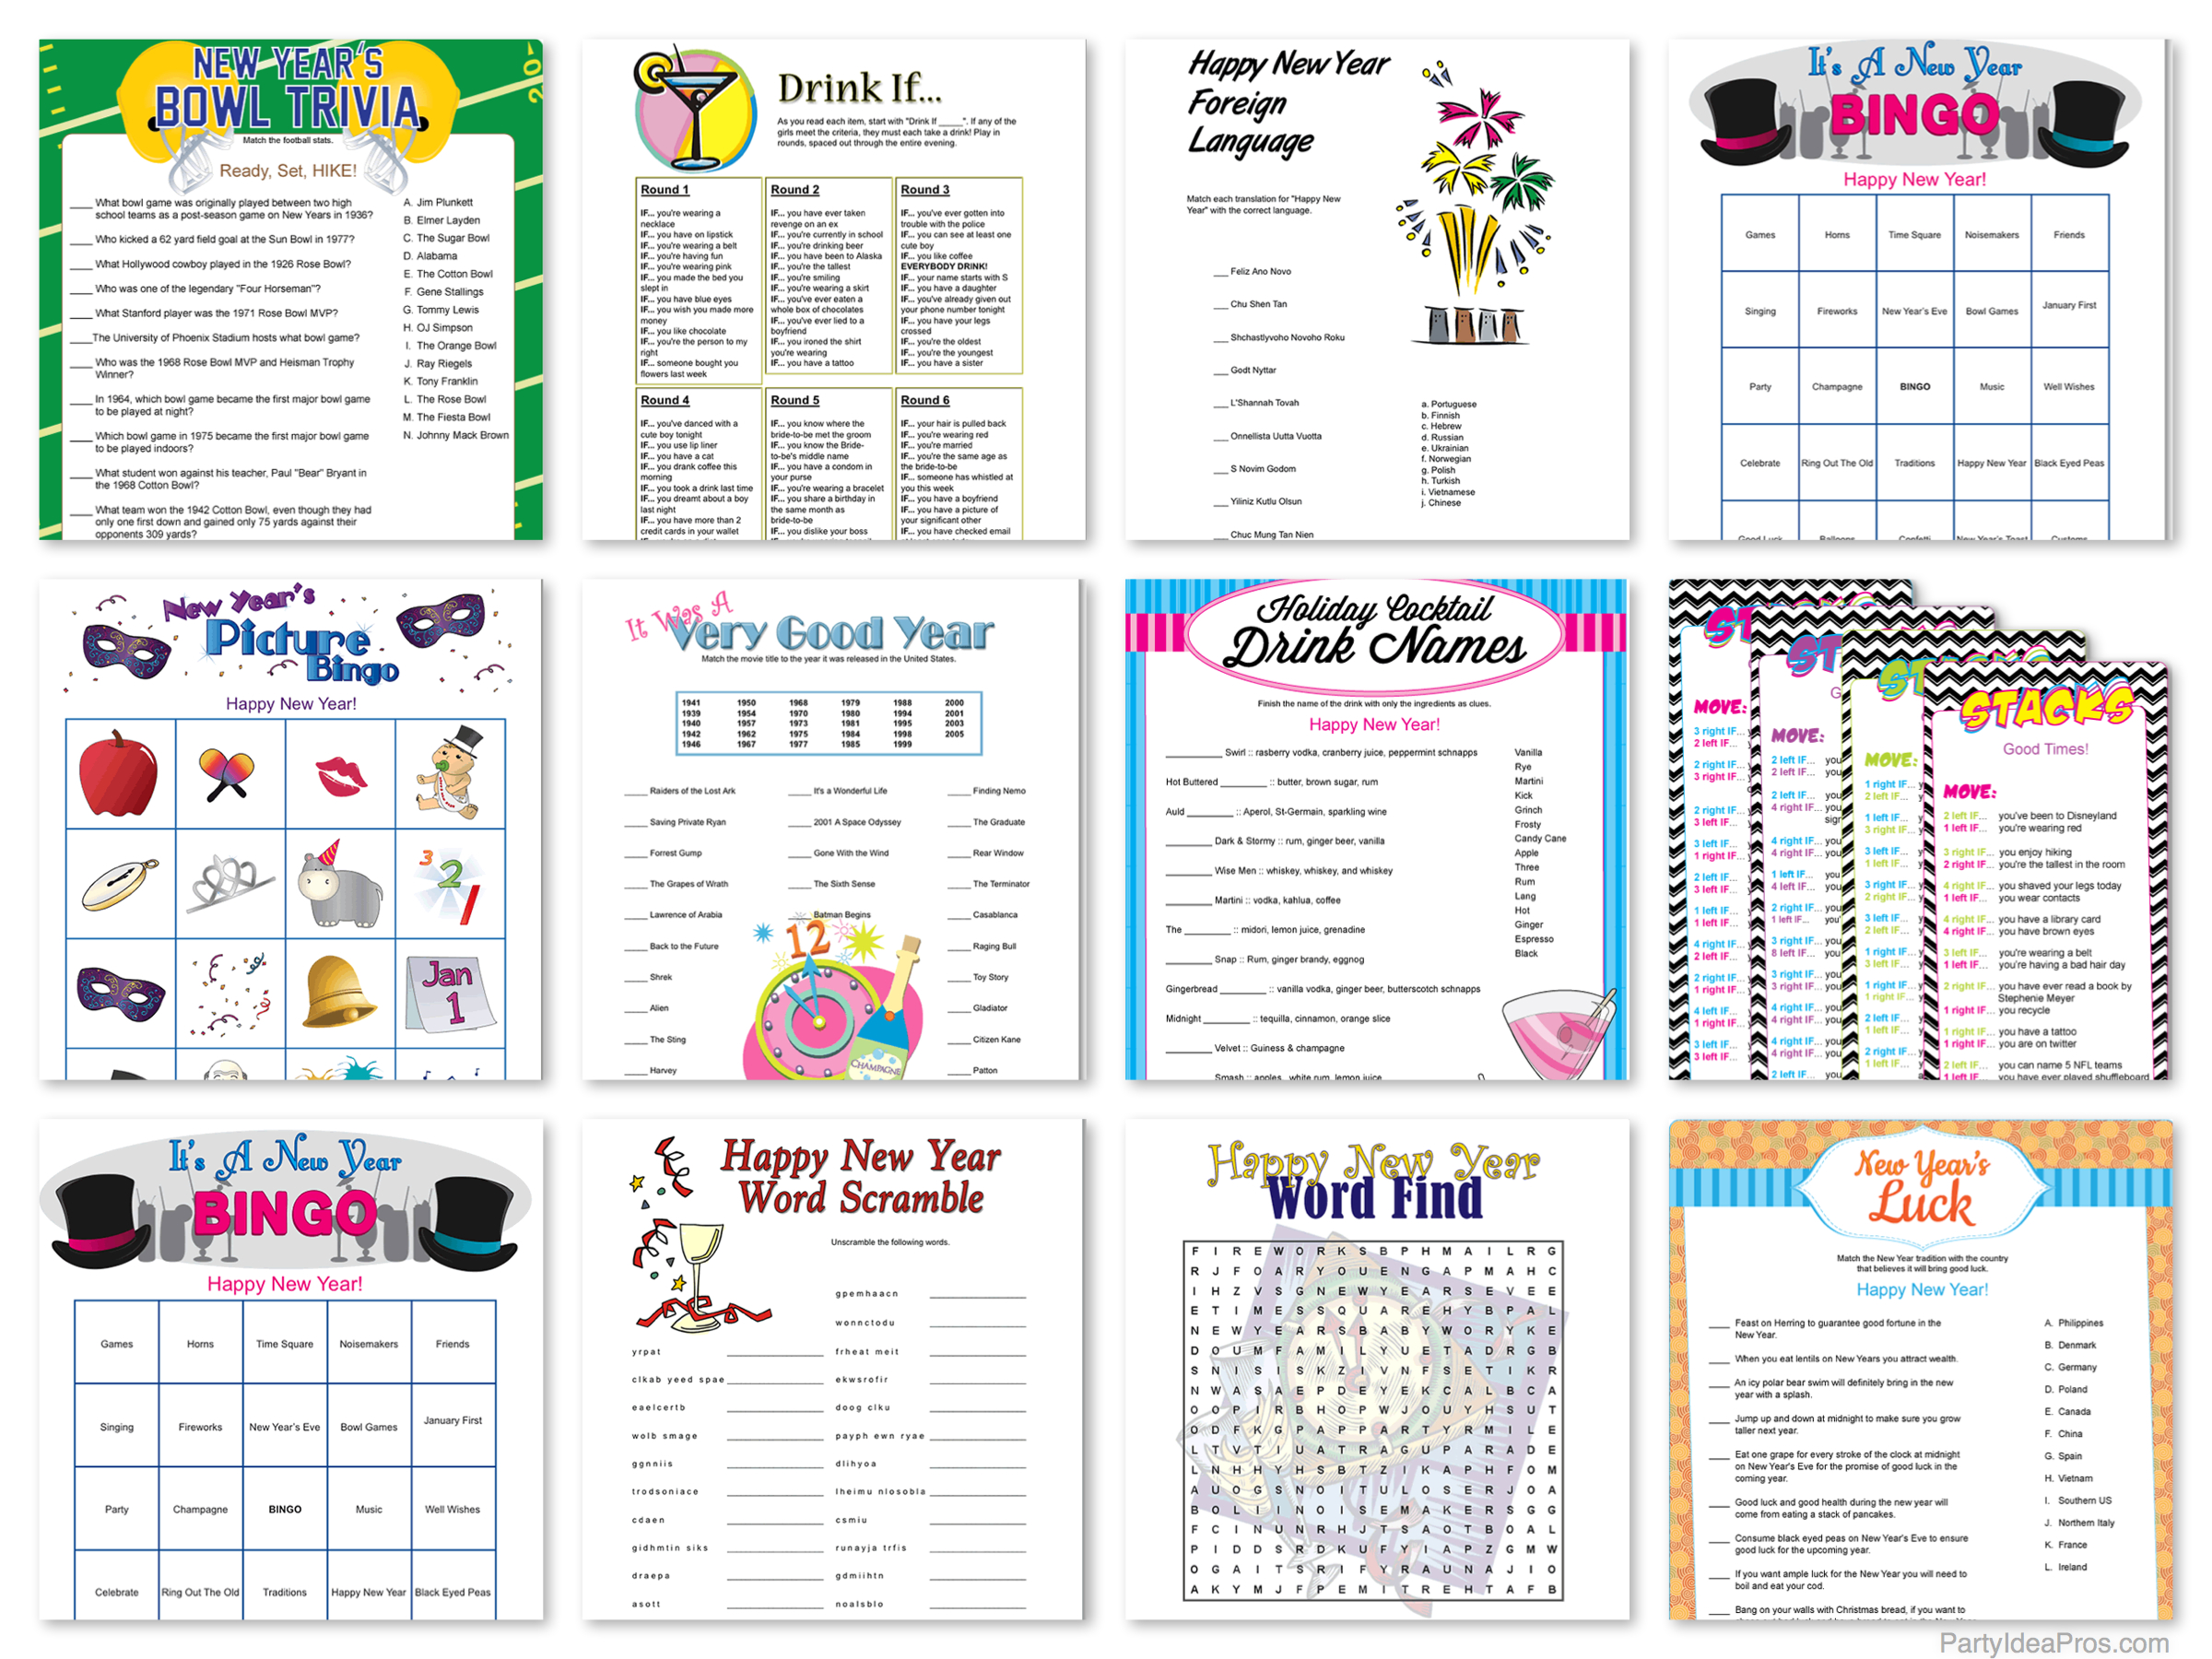 8 Images of Printable New Year's Games